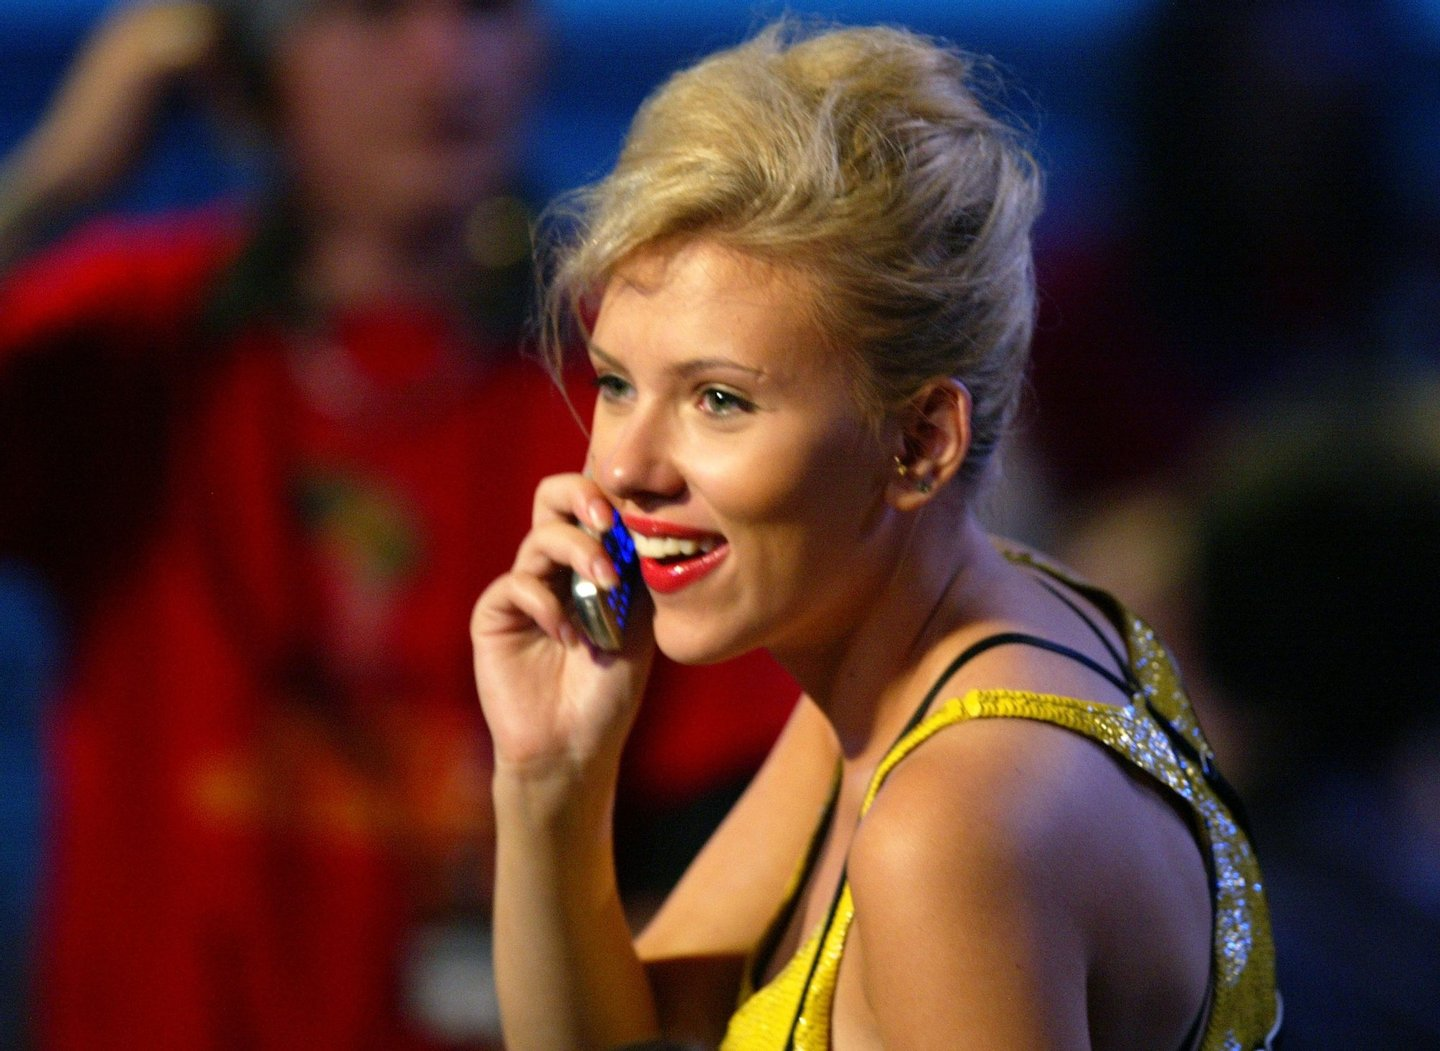 CULVER CITY, CA - JUNE 5: (U.S. TABLOIDS OUT) Actress Scarlett Johansson talks on her cellular phone at the 2004 MTV Movie Awards at the Sony Pictures Studios on June 5, 2004 in Culver City, California. The 2004 MTV Movie Awards will air on the MTV Network June 10, 2004 9 PM (ET/PT). (Photo by Kevin Winter/Getty Images)